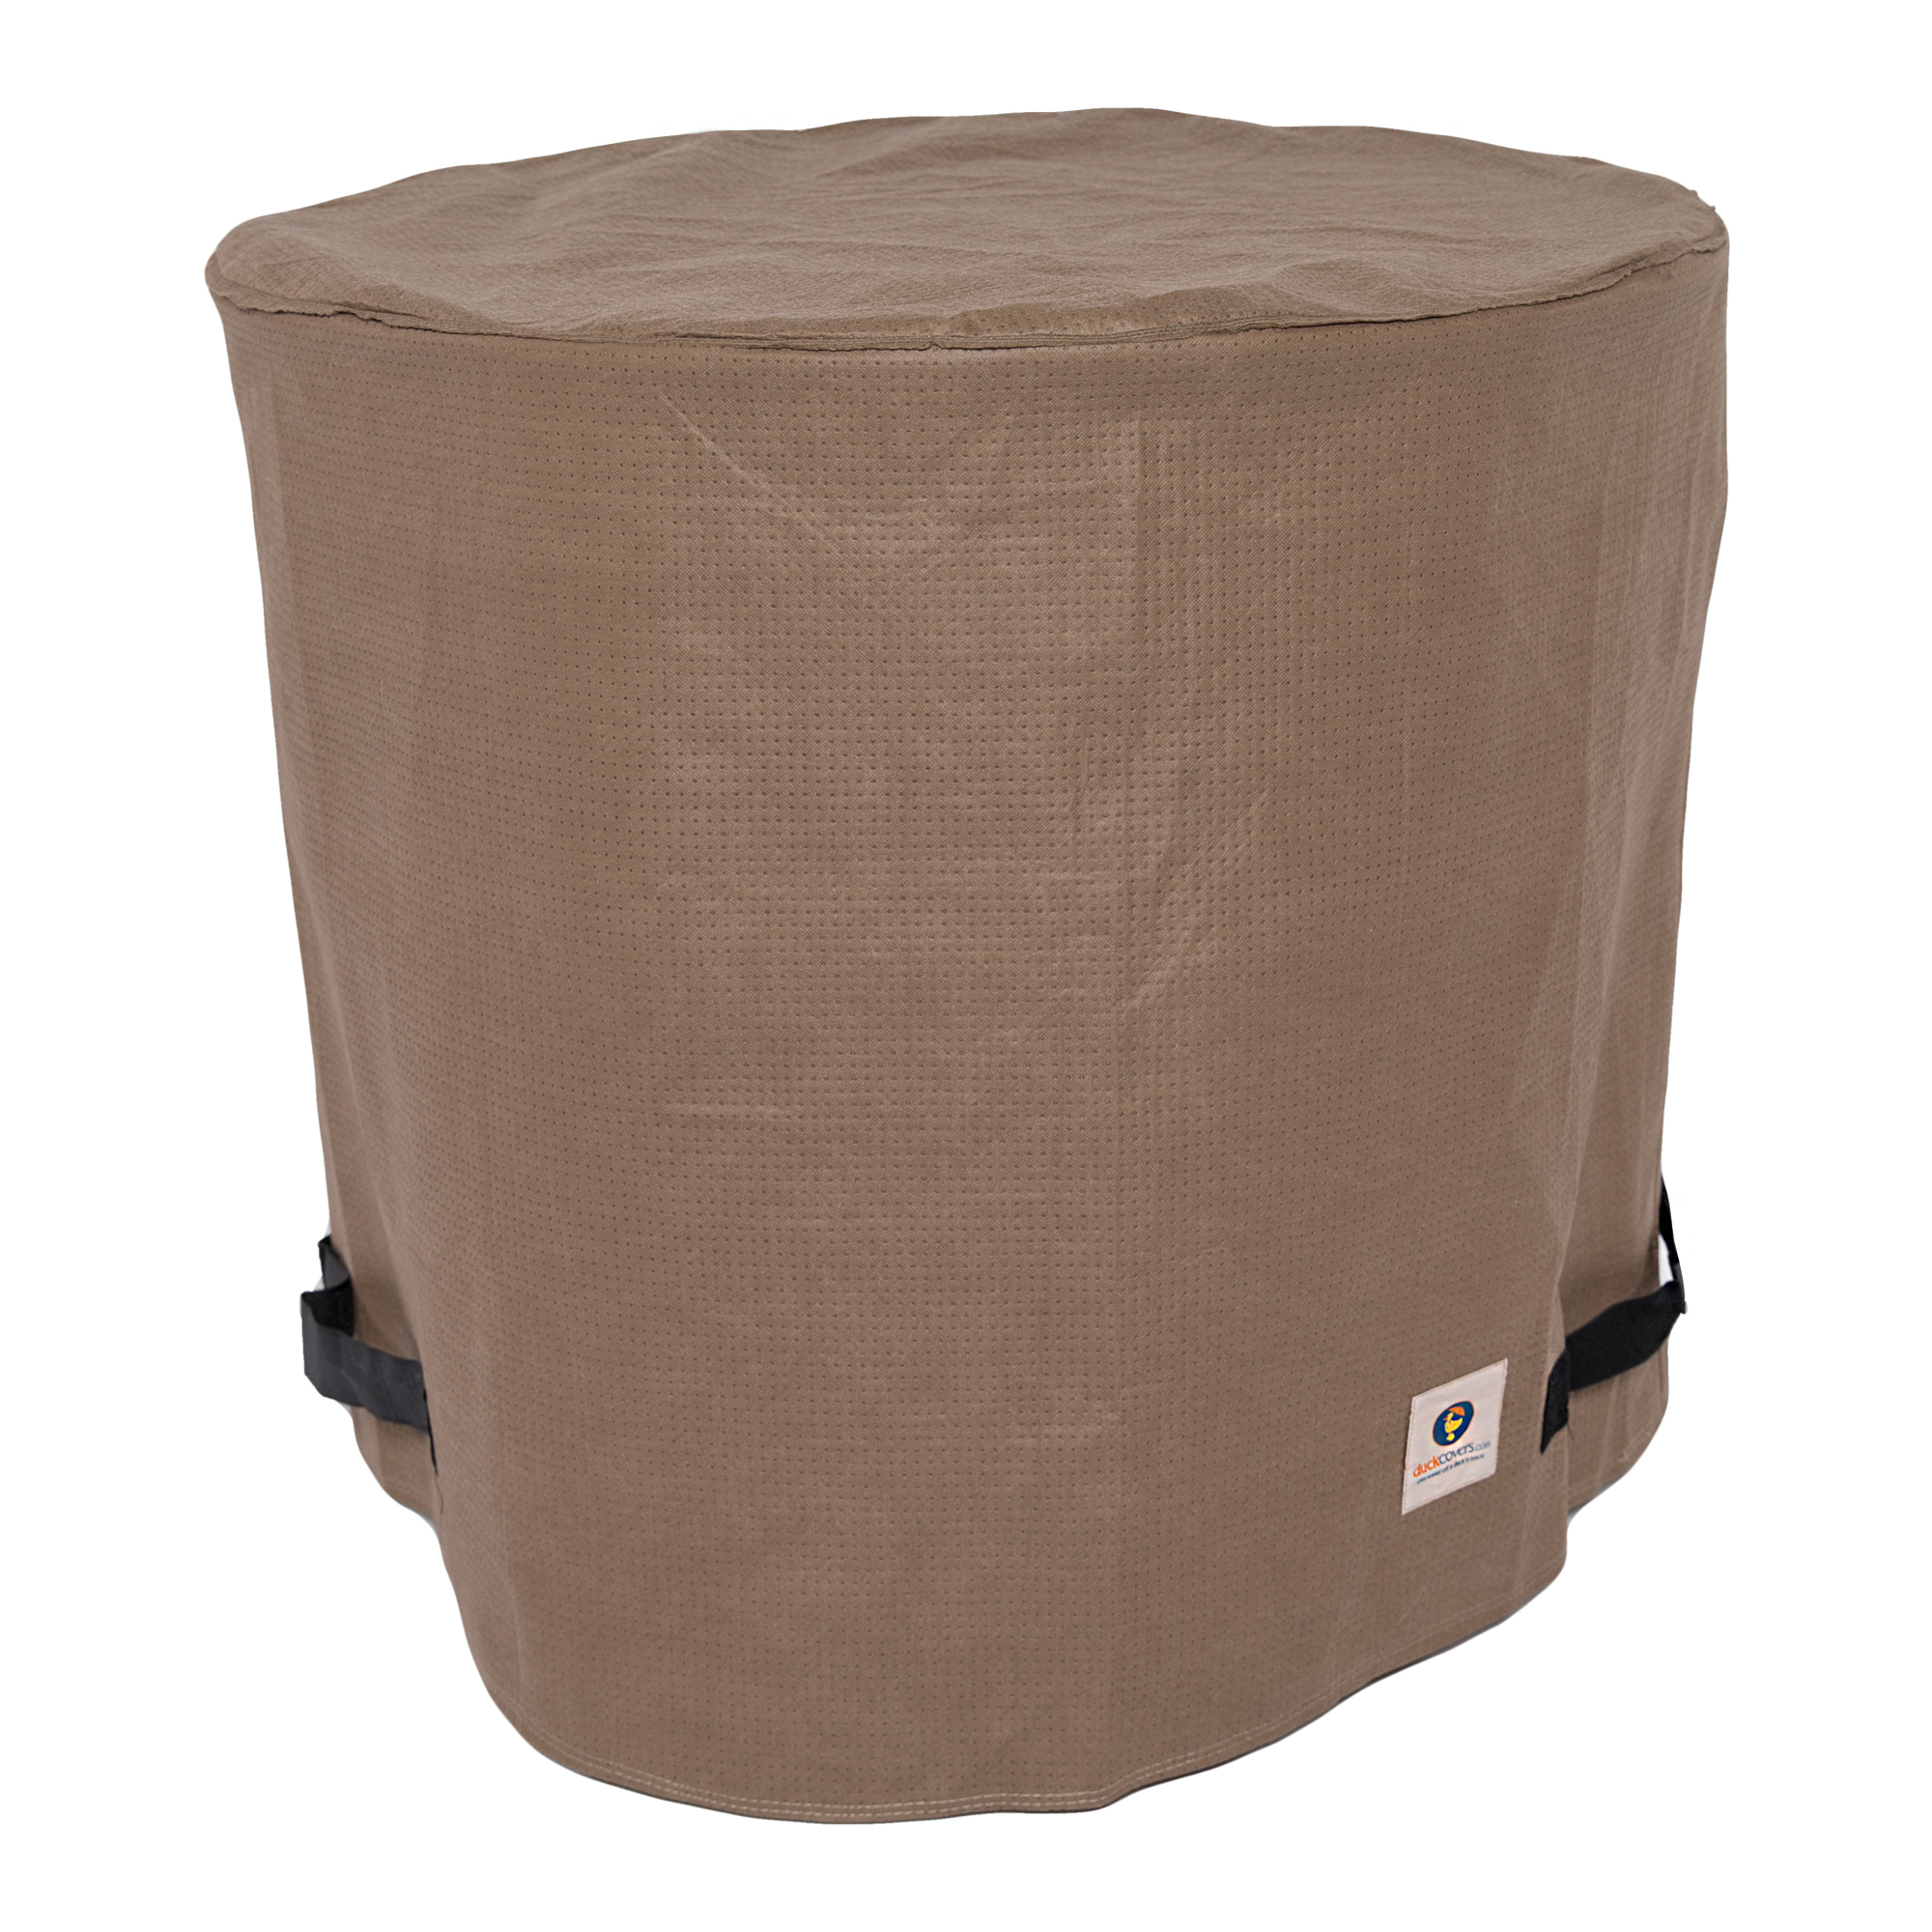 Duck Covers Elite 34 in. Round Air Conditioner Cover